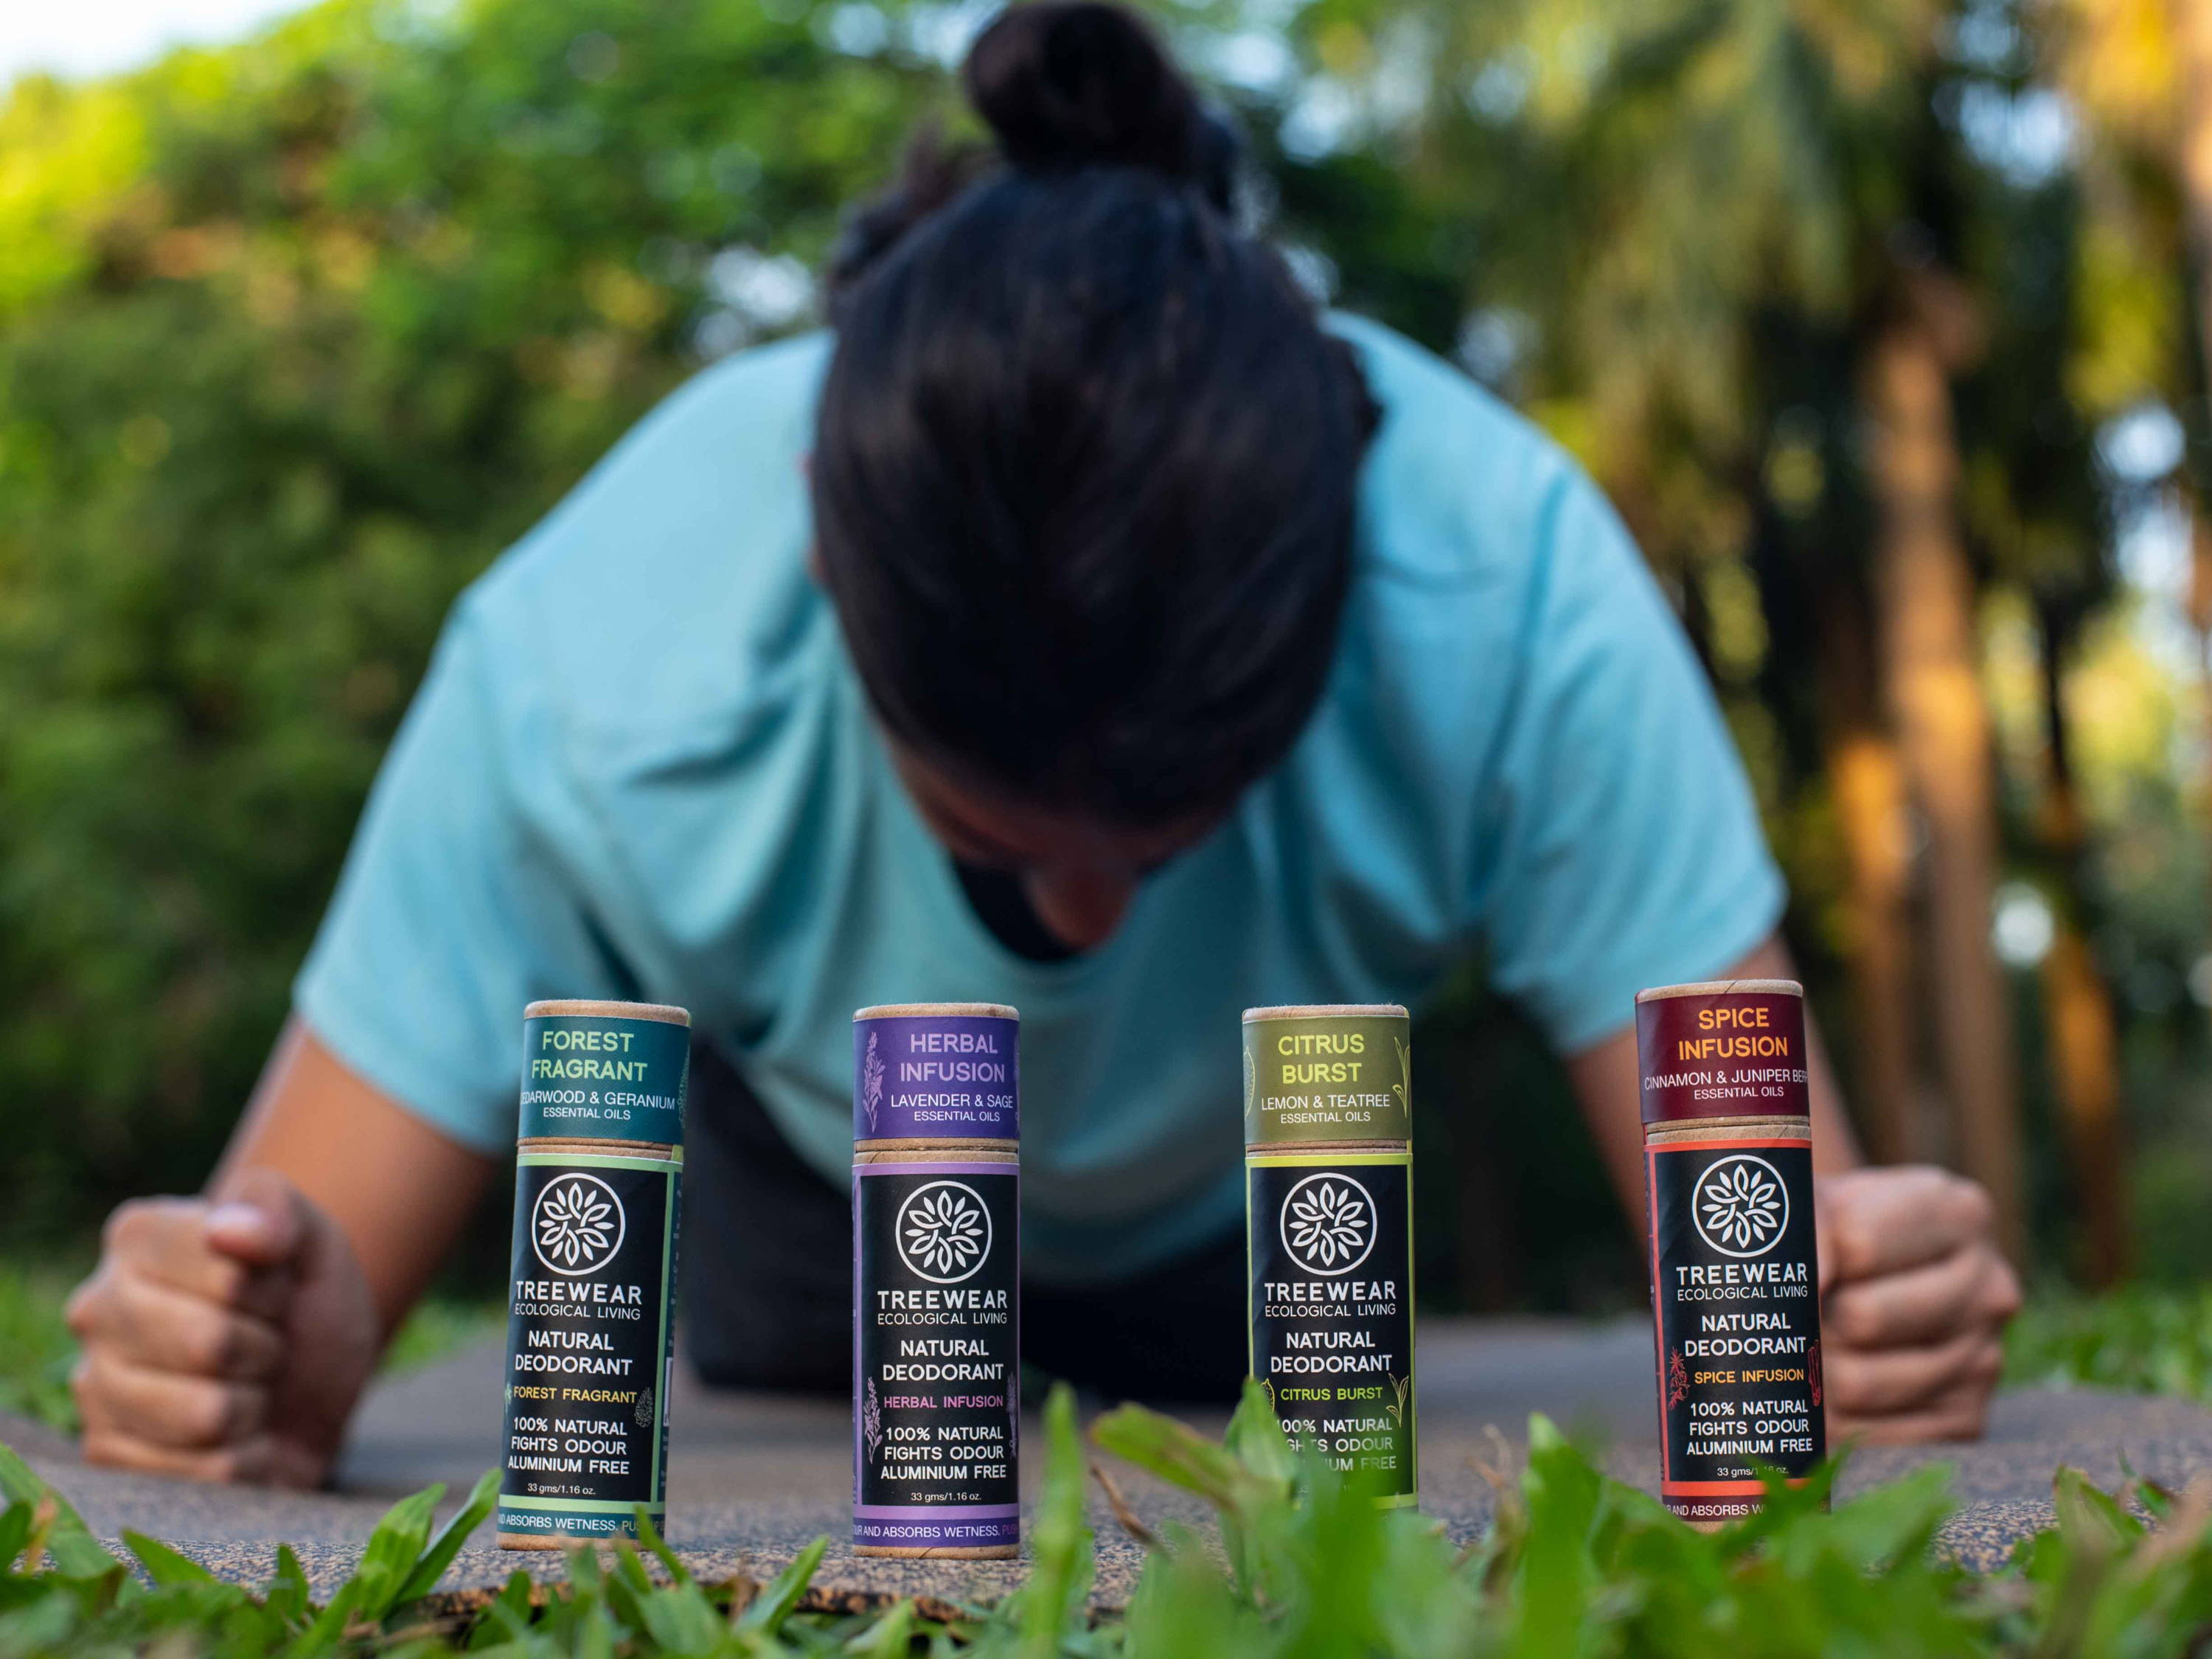 Natural Deodorant Stick - set of 4 planking